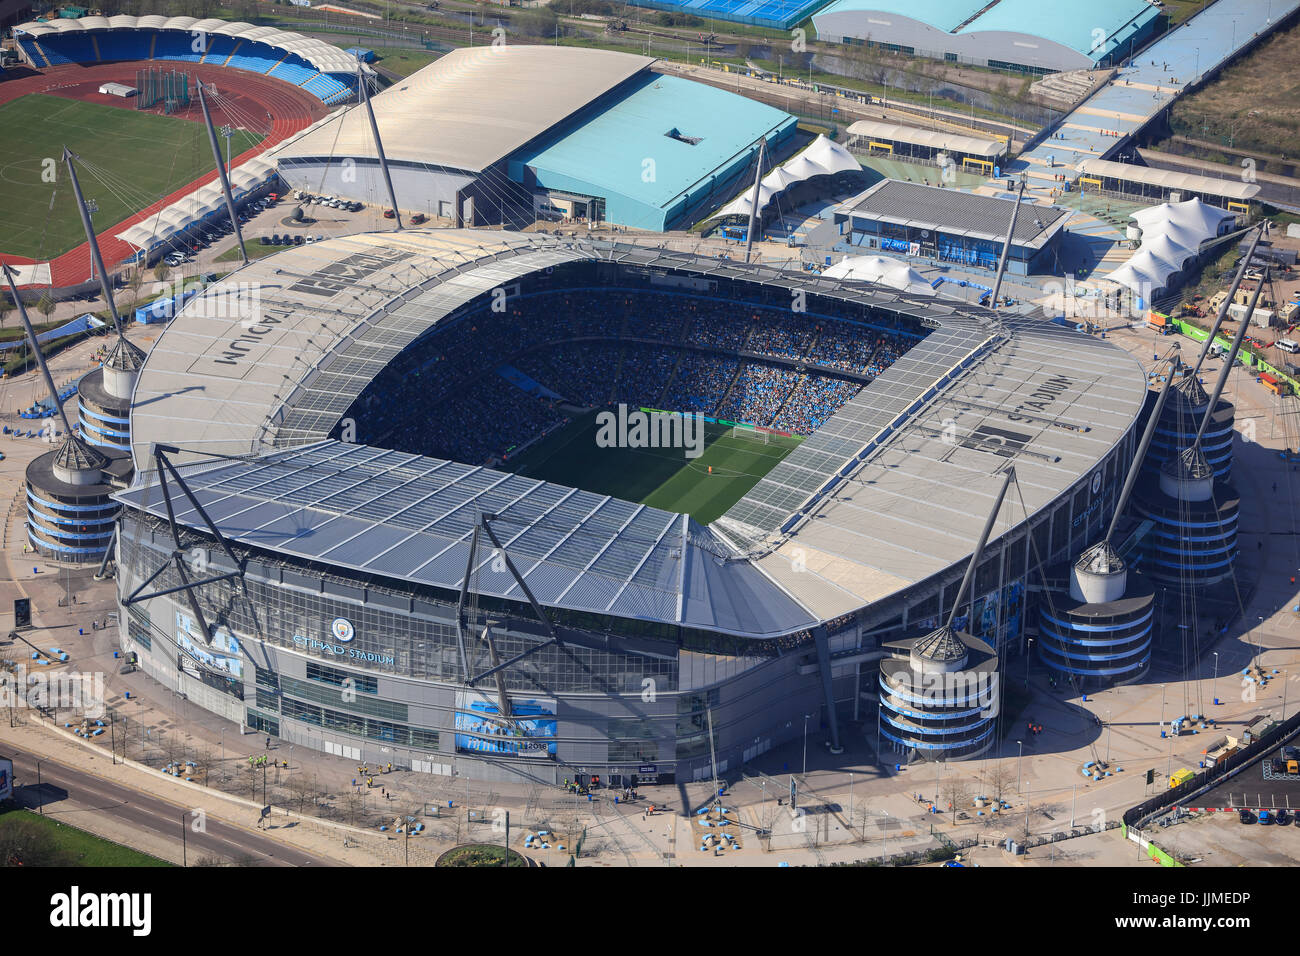 An aerial view of the City of Manchester Stadium, home of Manchester City FC - Stock Image